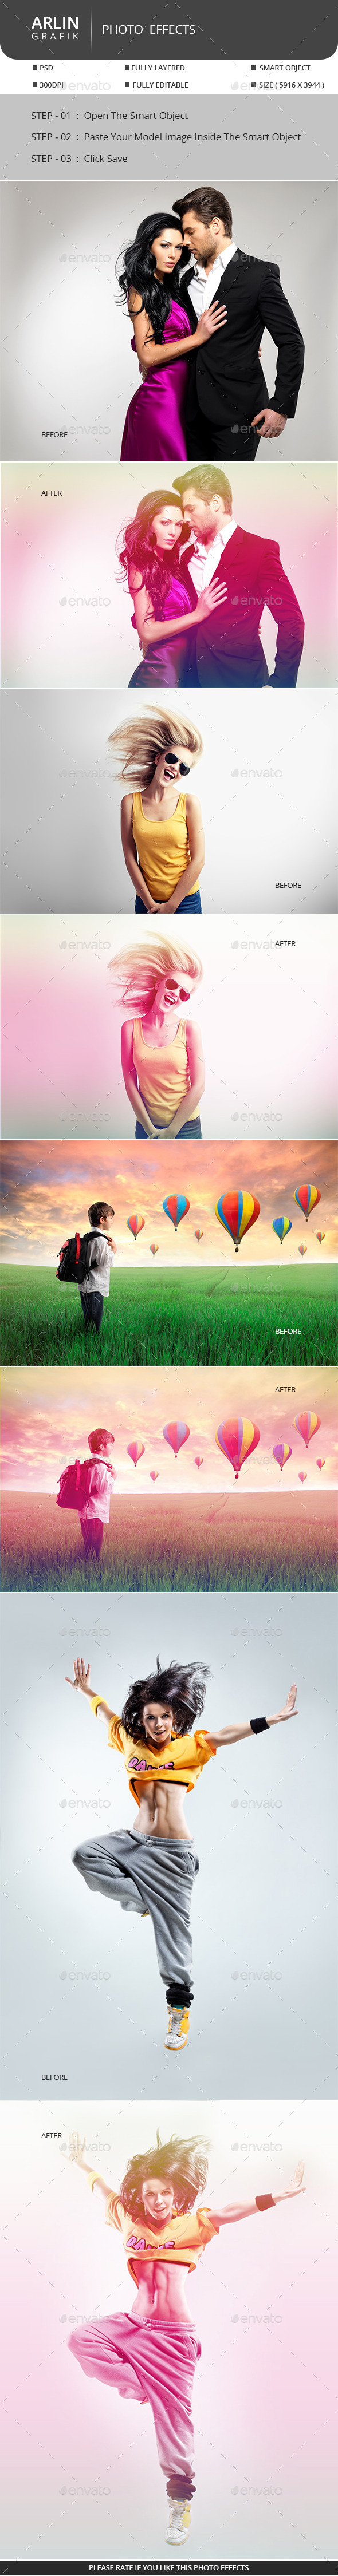 GraphicRiver Rainbow Photo Display 10041234